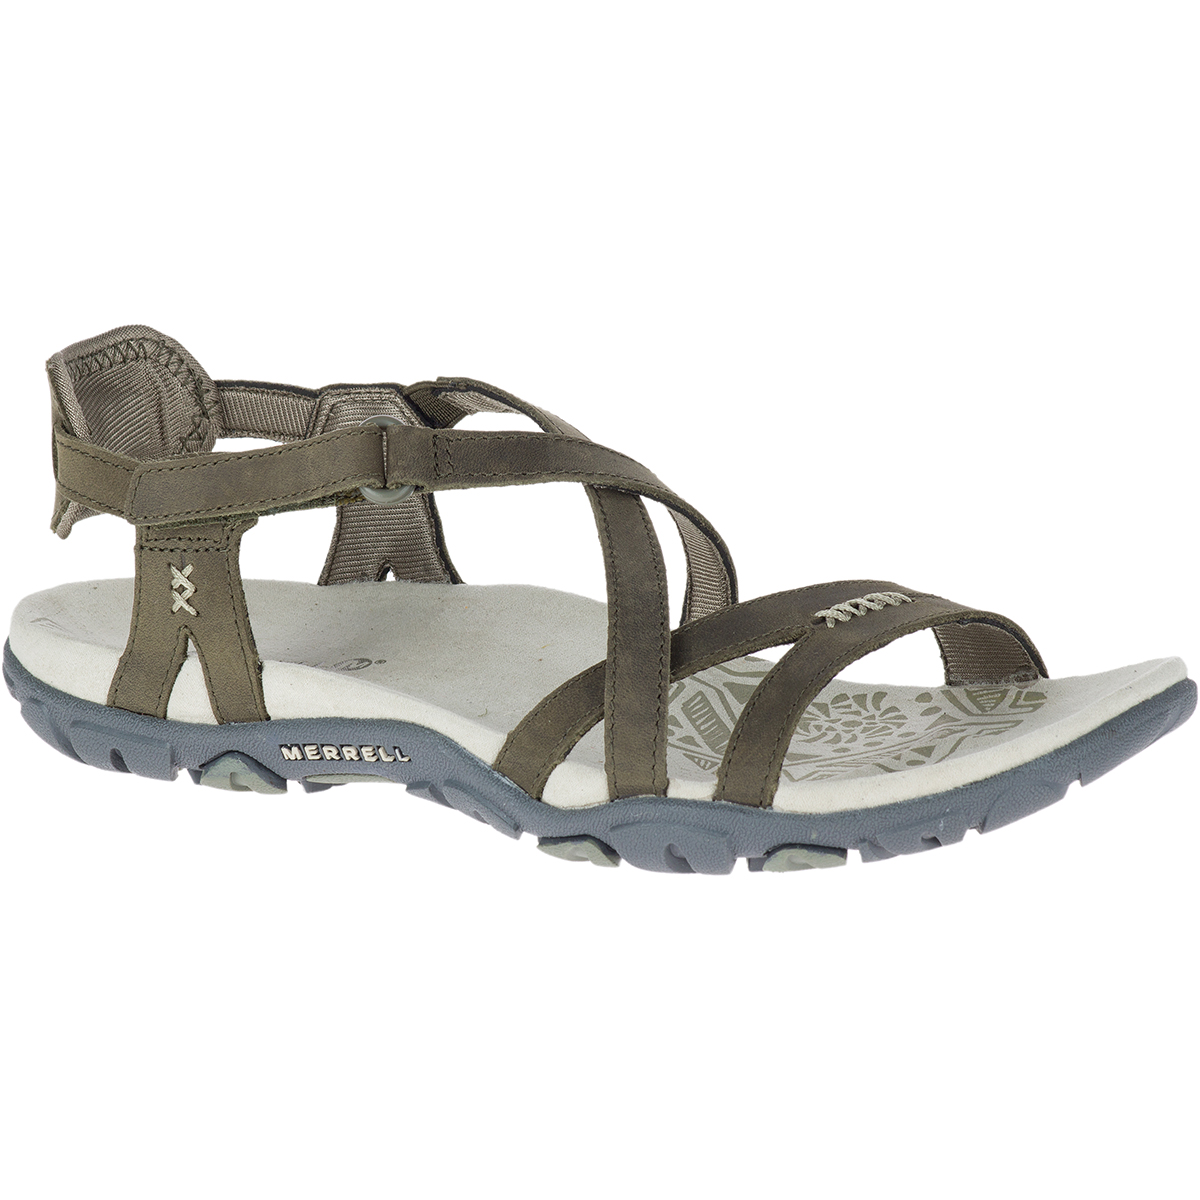 Merrell Women's Sandspur Rose Leather Sandals - Green, 7